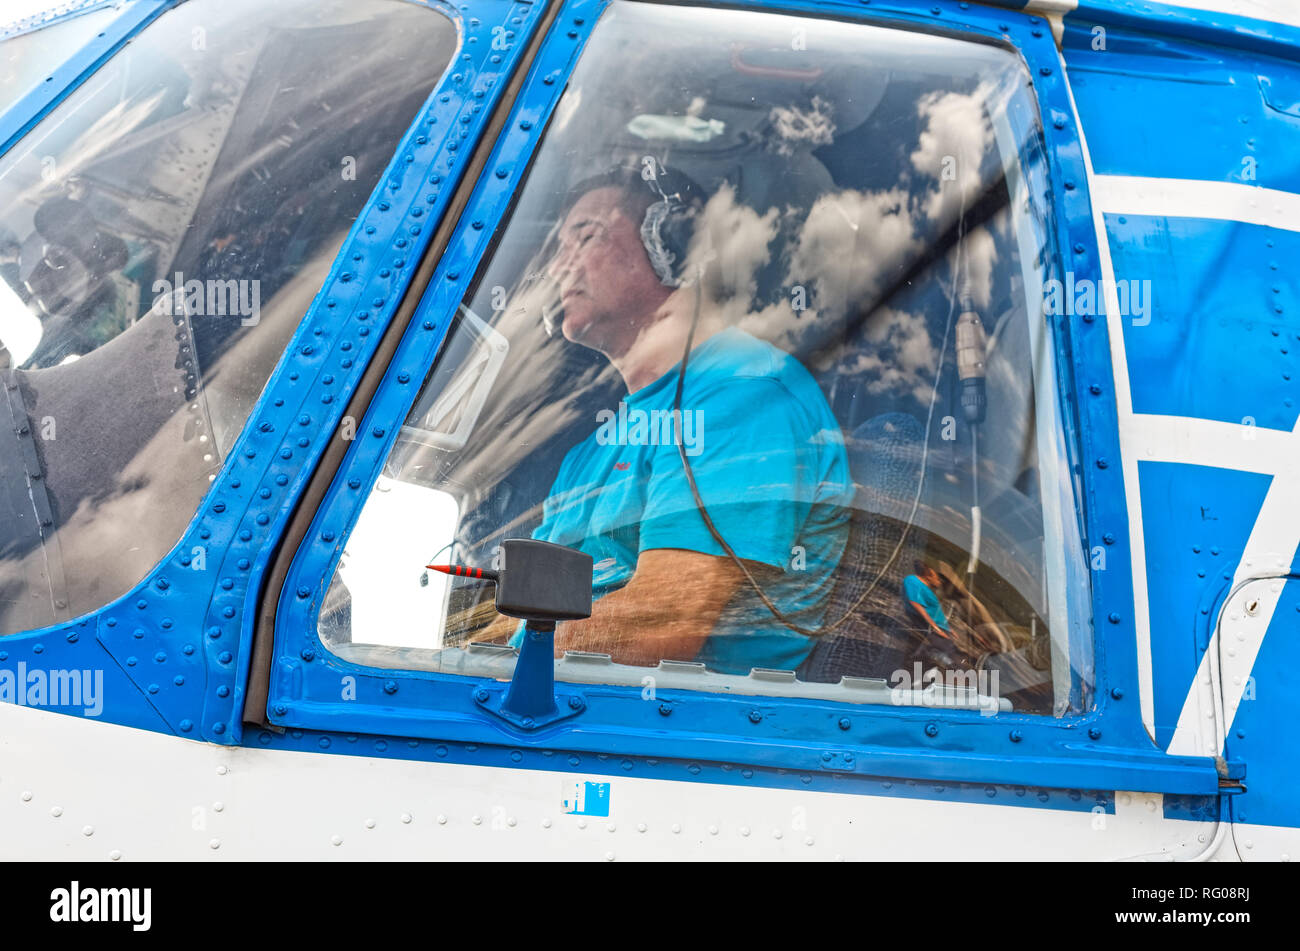 Yamal, Russia - August 2011: Portrait of a pilot of a MI-8T helicopter close-up in a cockpit window. - Stock Image